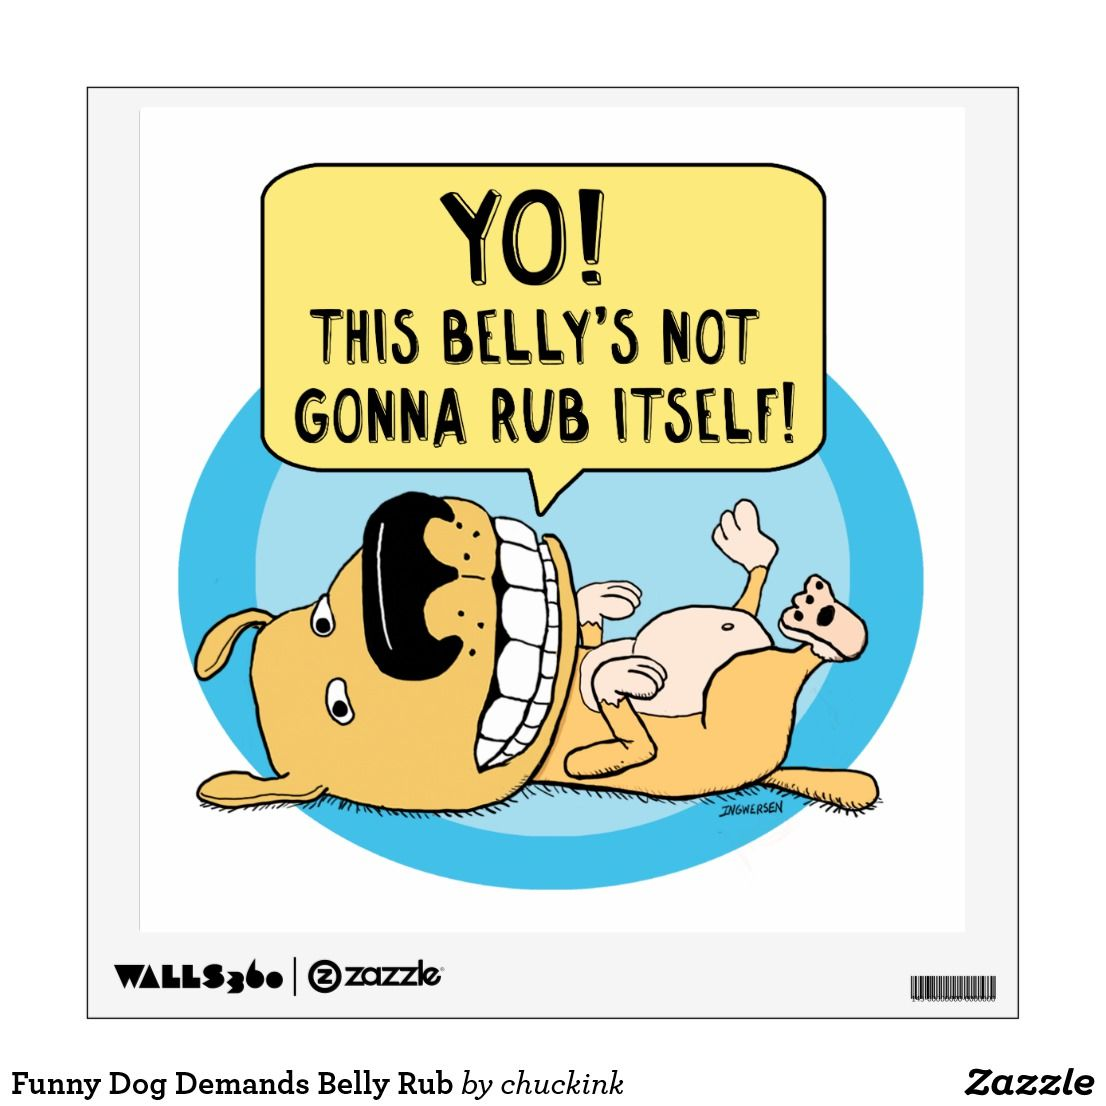 Funny Dog Demands Belly Rub Wall Sticker This funny wall decal ...